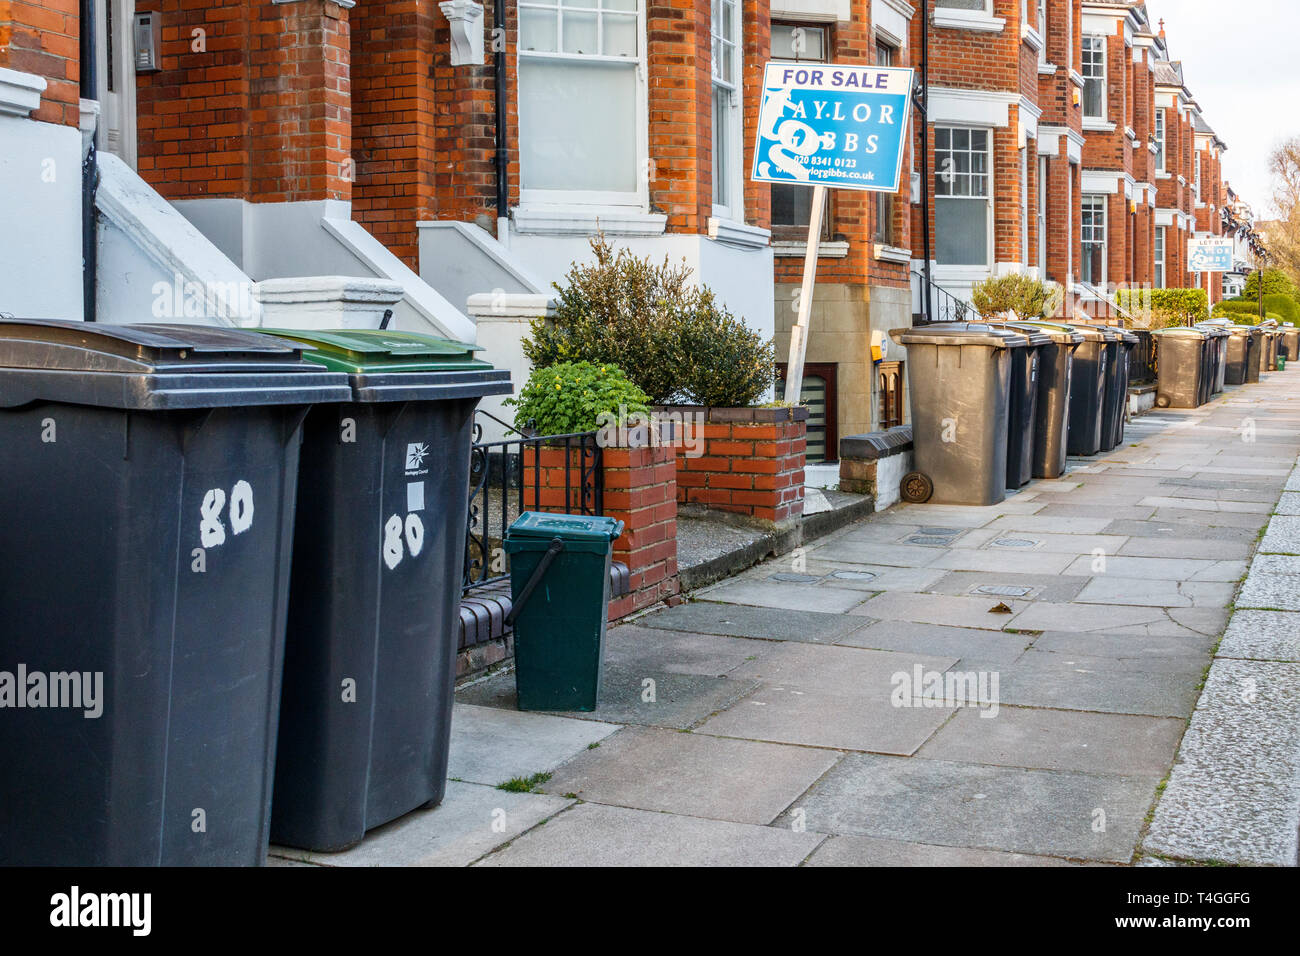 Plastic recycling and refuse wheelie-bins, often obstructing the pavement, awaiting collection by Haringey Council, North London, UK - Stock Image